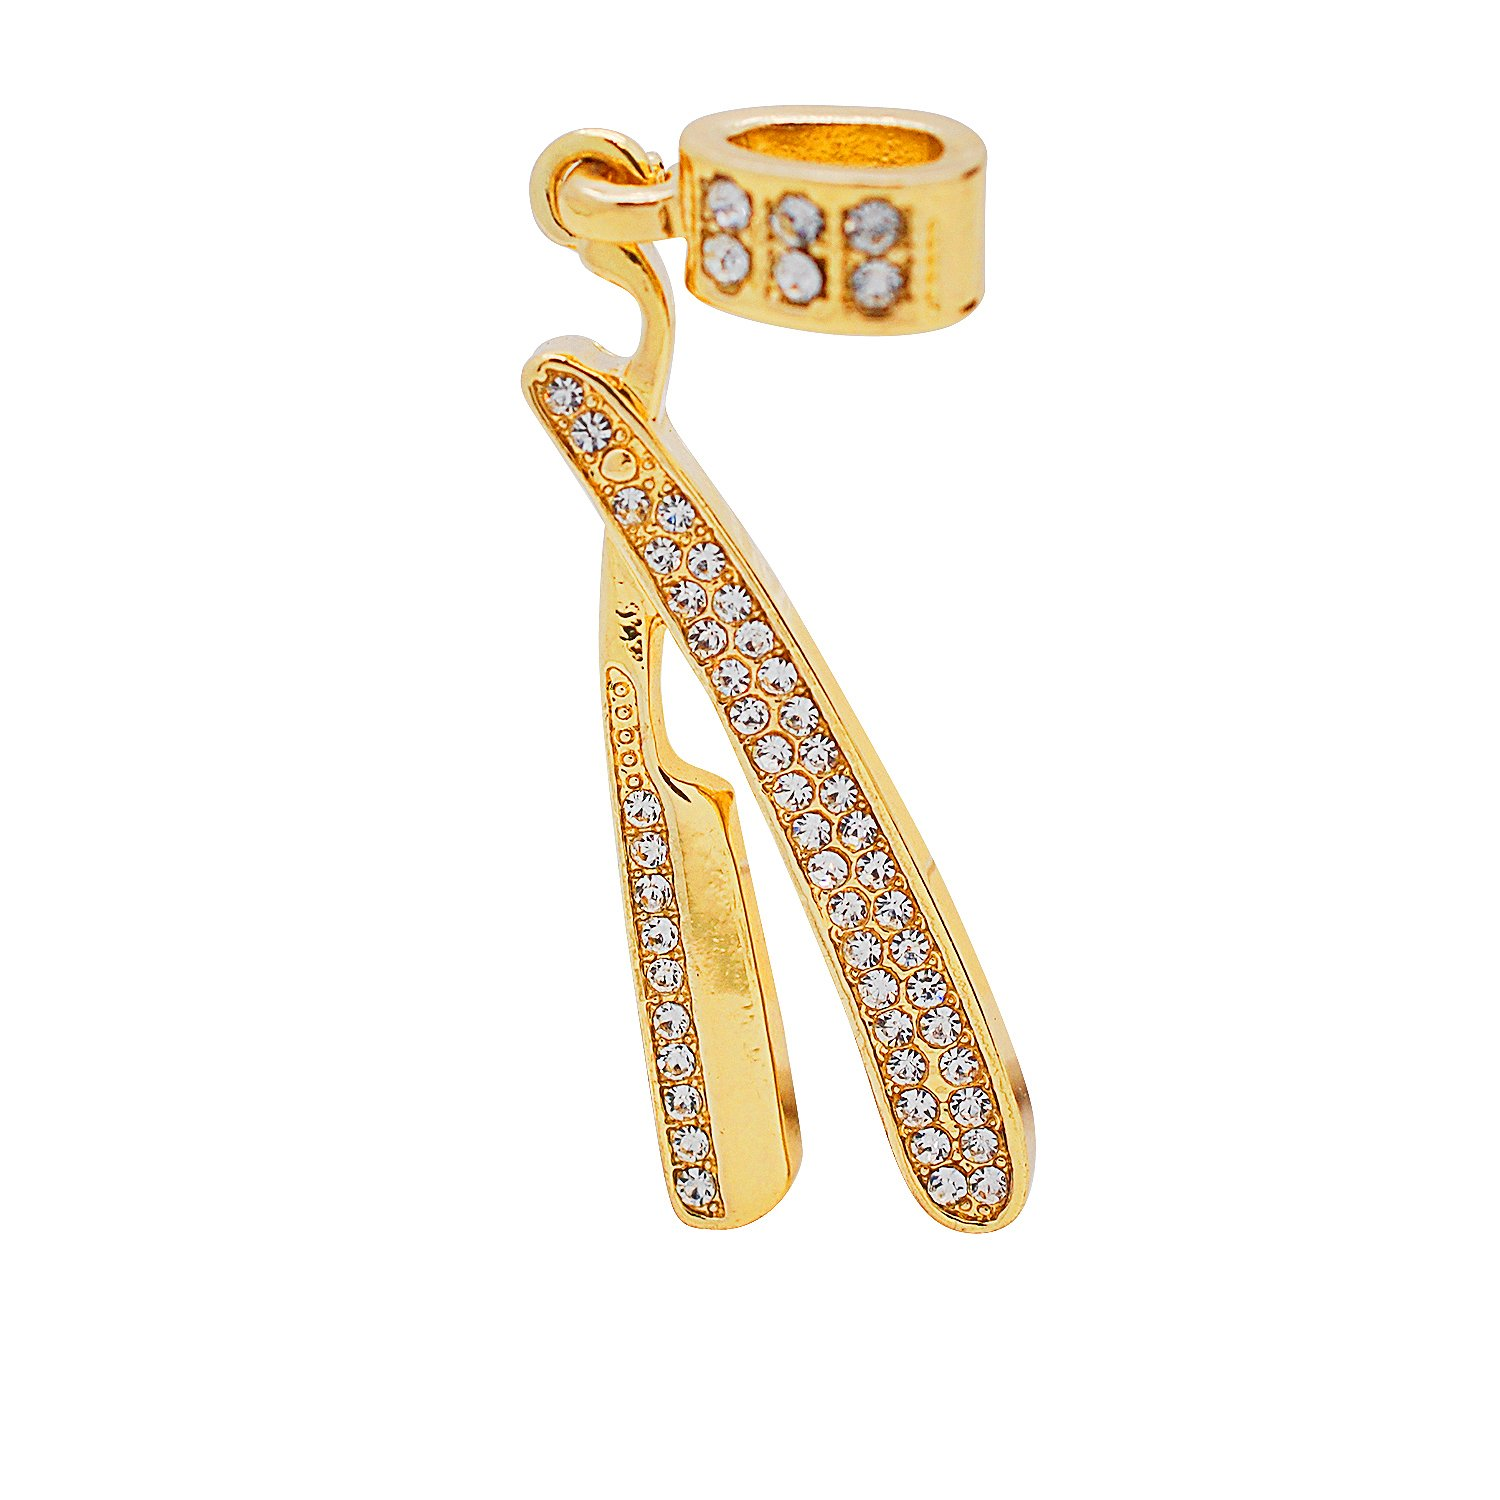 Yellow Gold-Tone Hip Hop Bling Simulated Crystal Straight Razor Blade Pendant with 24 Tennis Chain and 24 Rope Chain